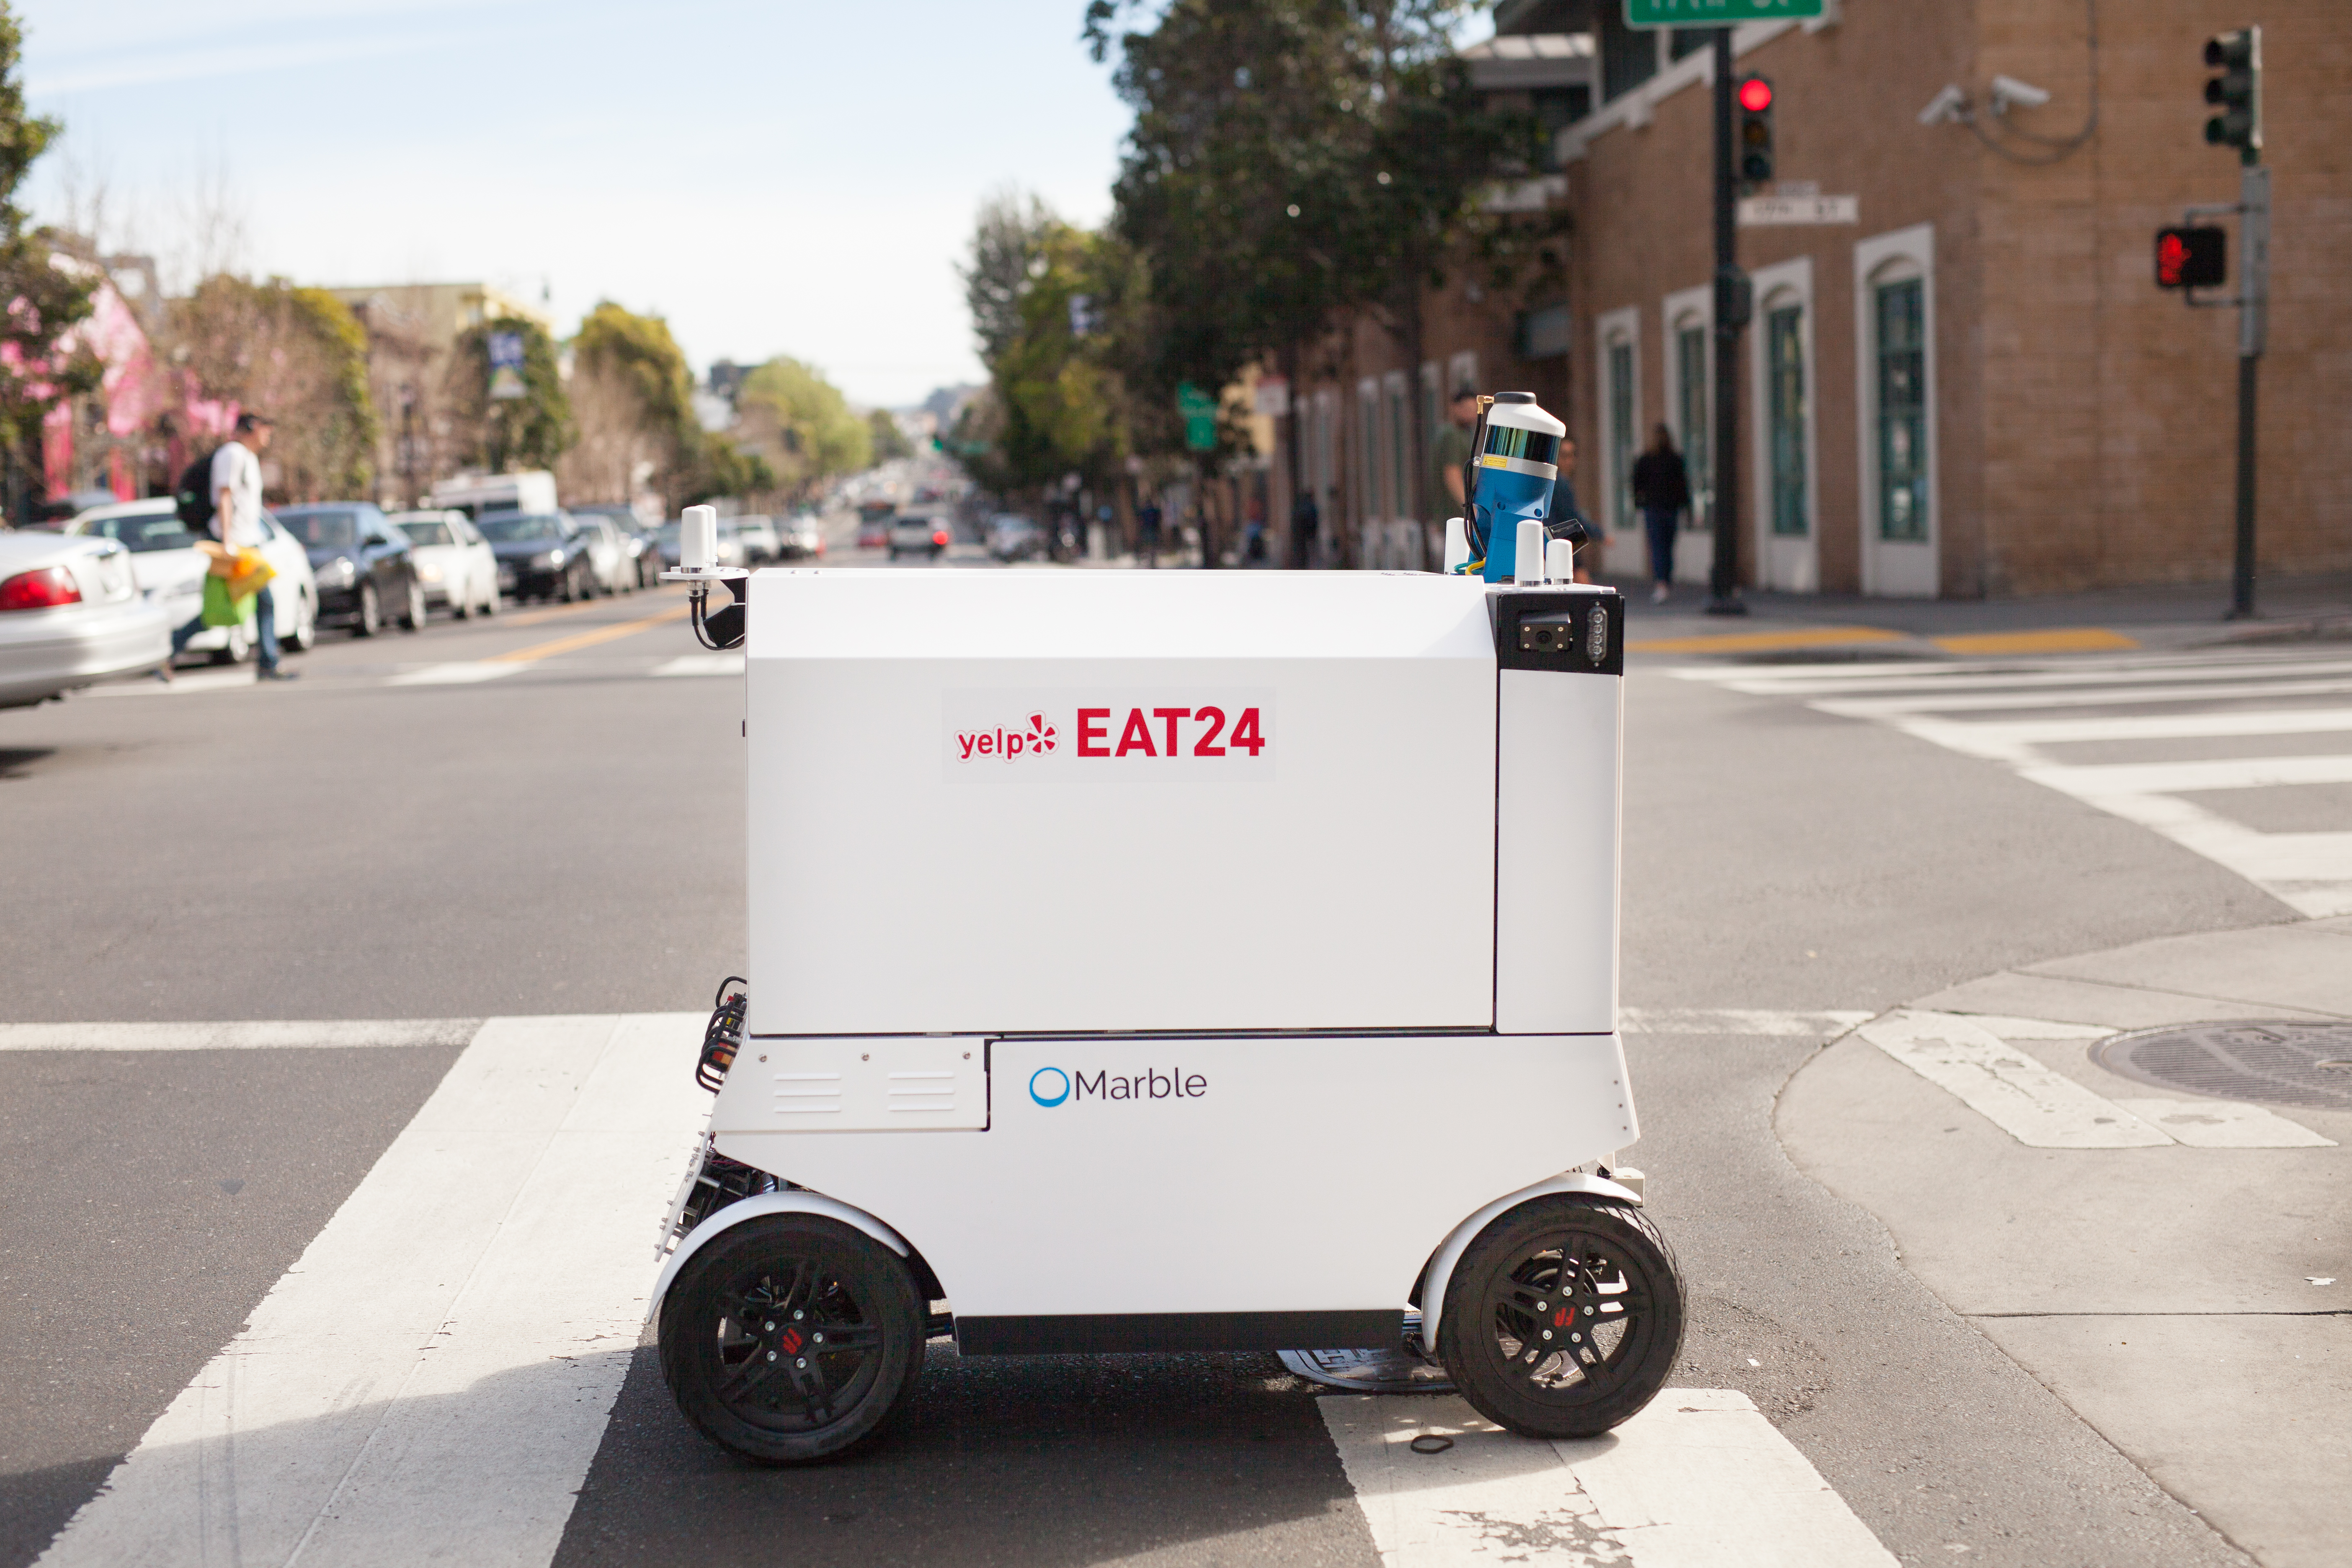 San Francisco made things much tougher for robotic delivery startups this week